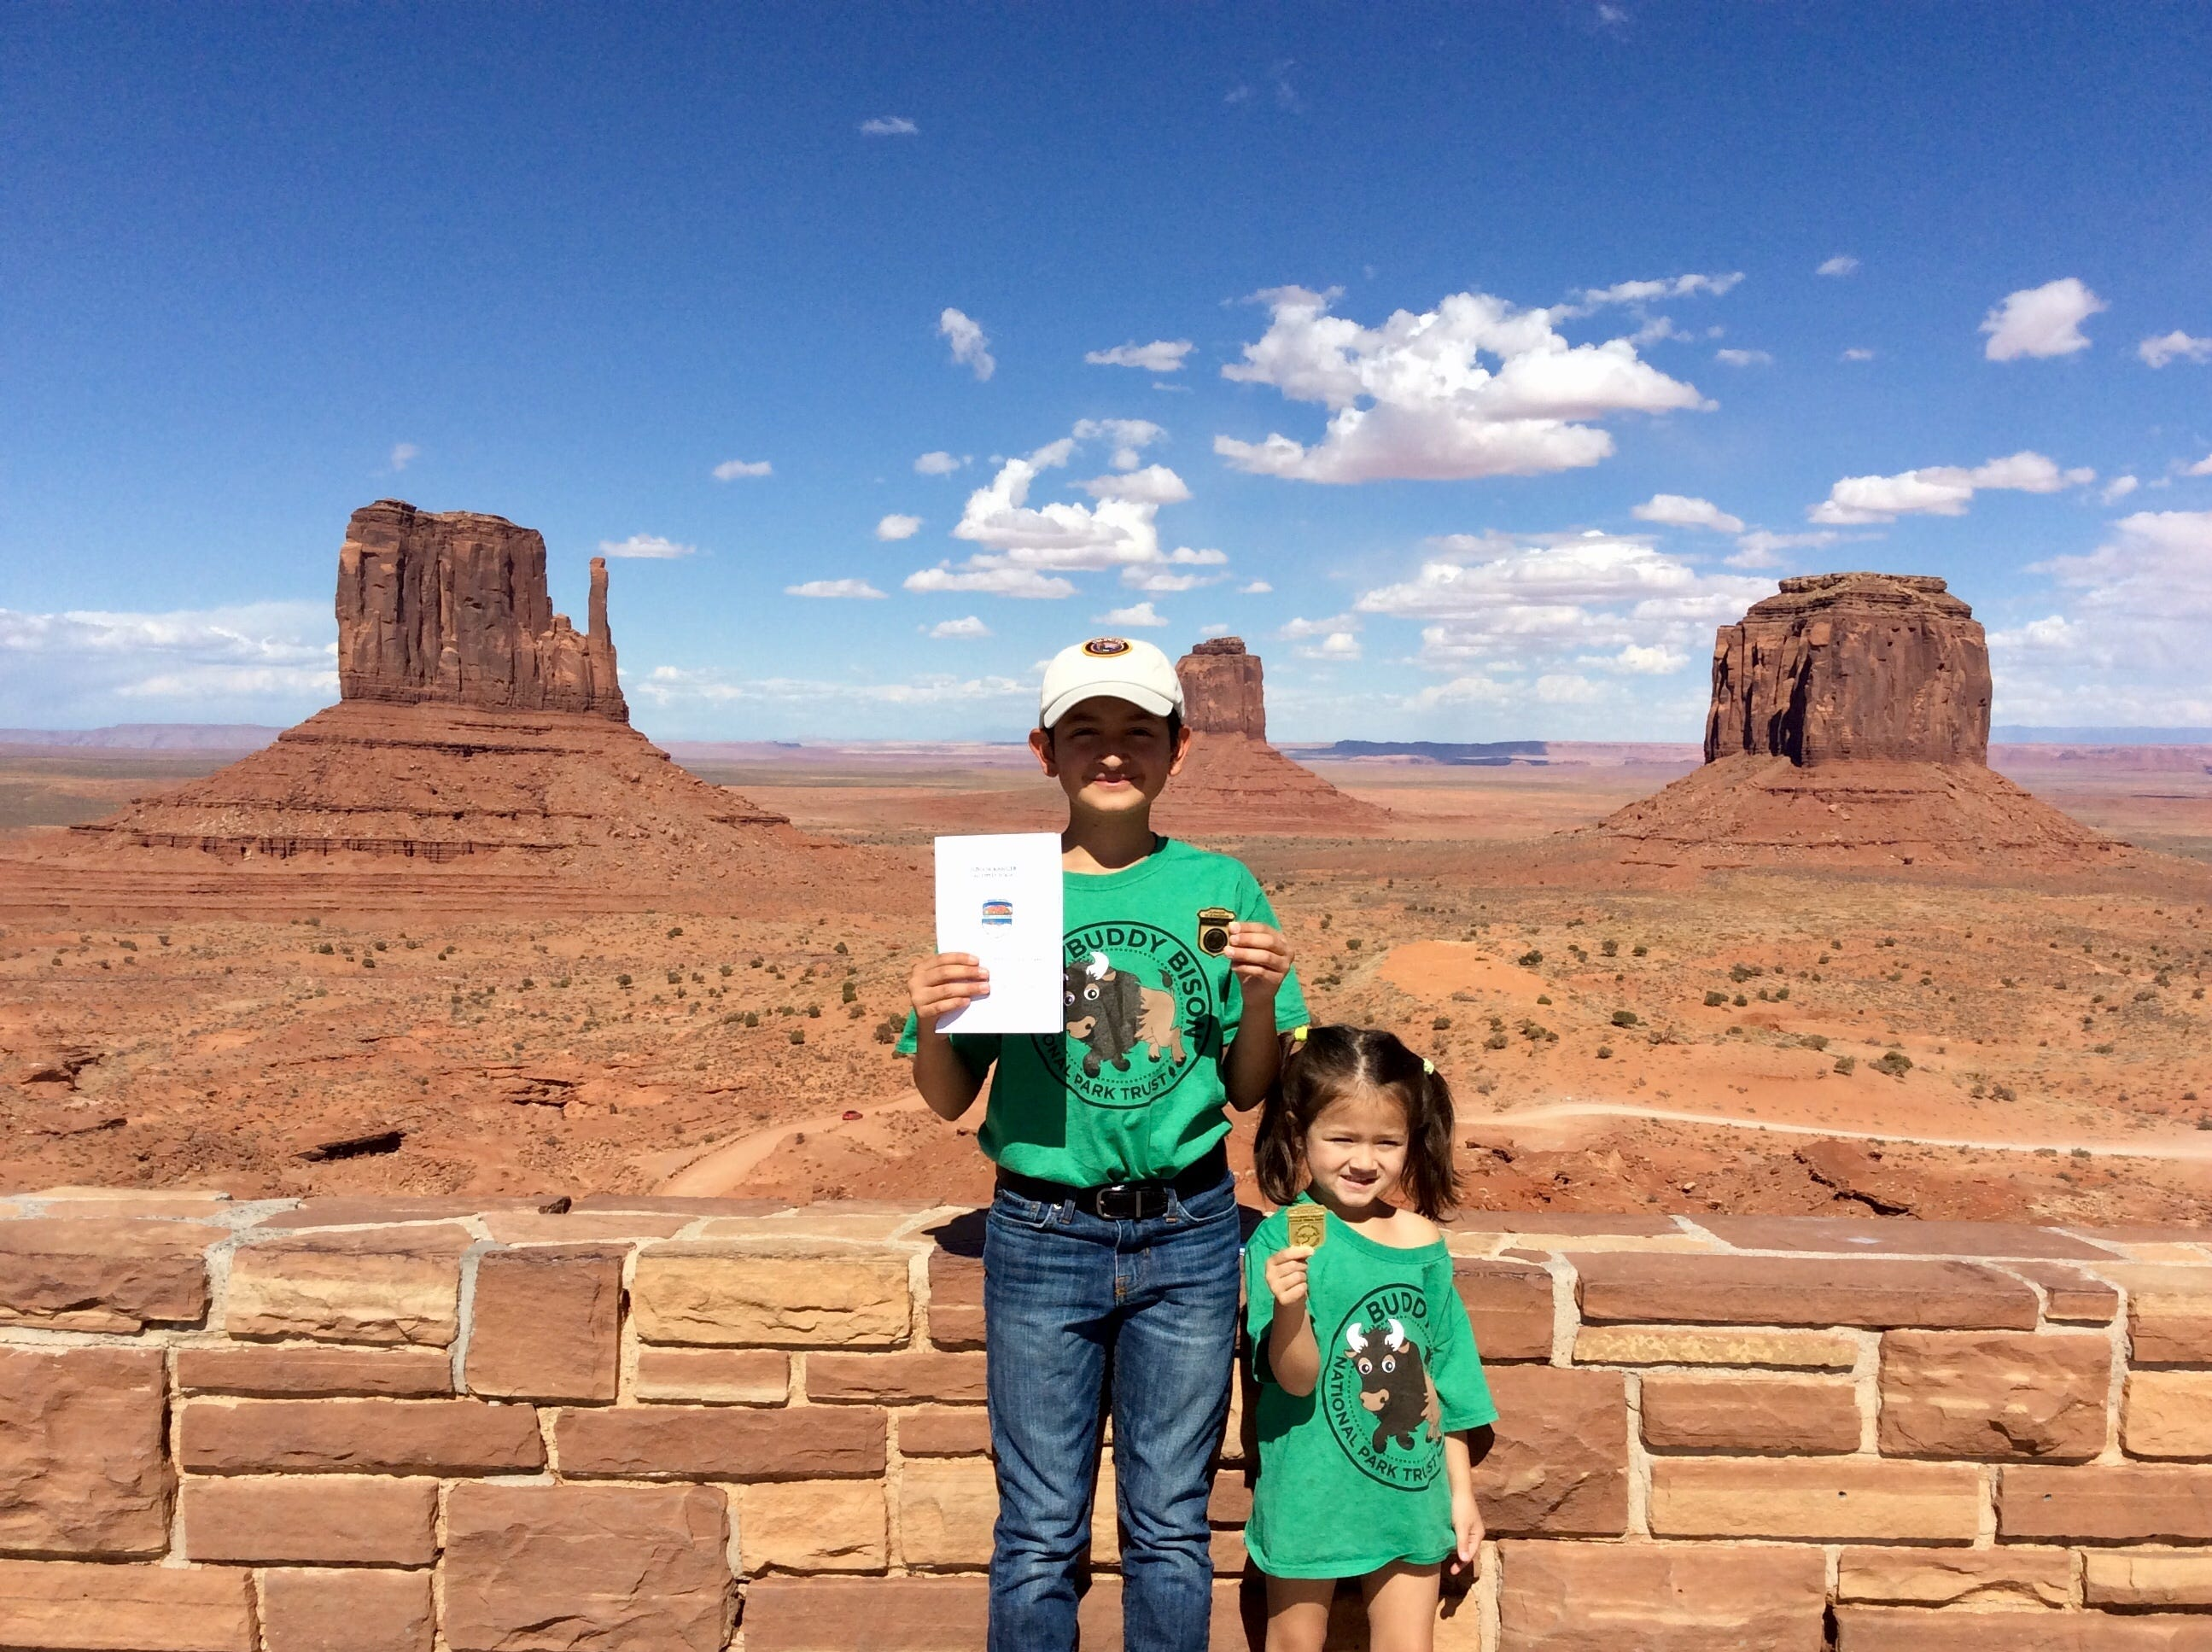 Bryan Wilson, 12, with sister Penelope, 4, at Monument Valley Tribal Park showing off their park ranger badges.